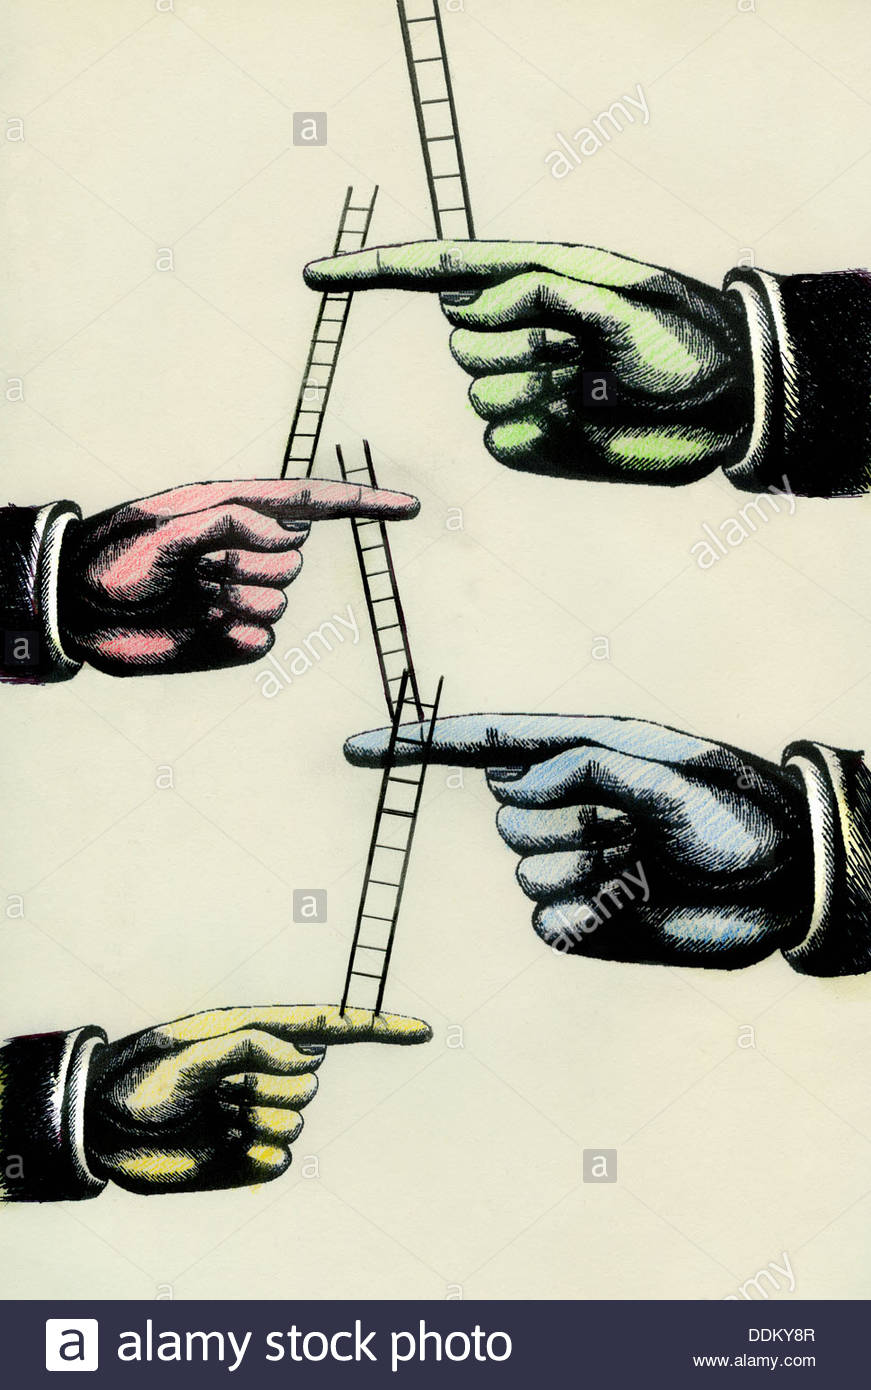 Large fingers supporting ladders - Stock Image